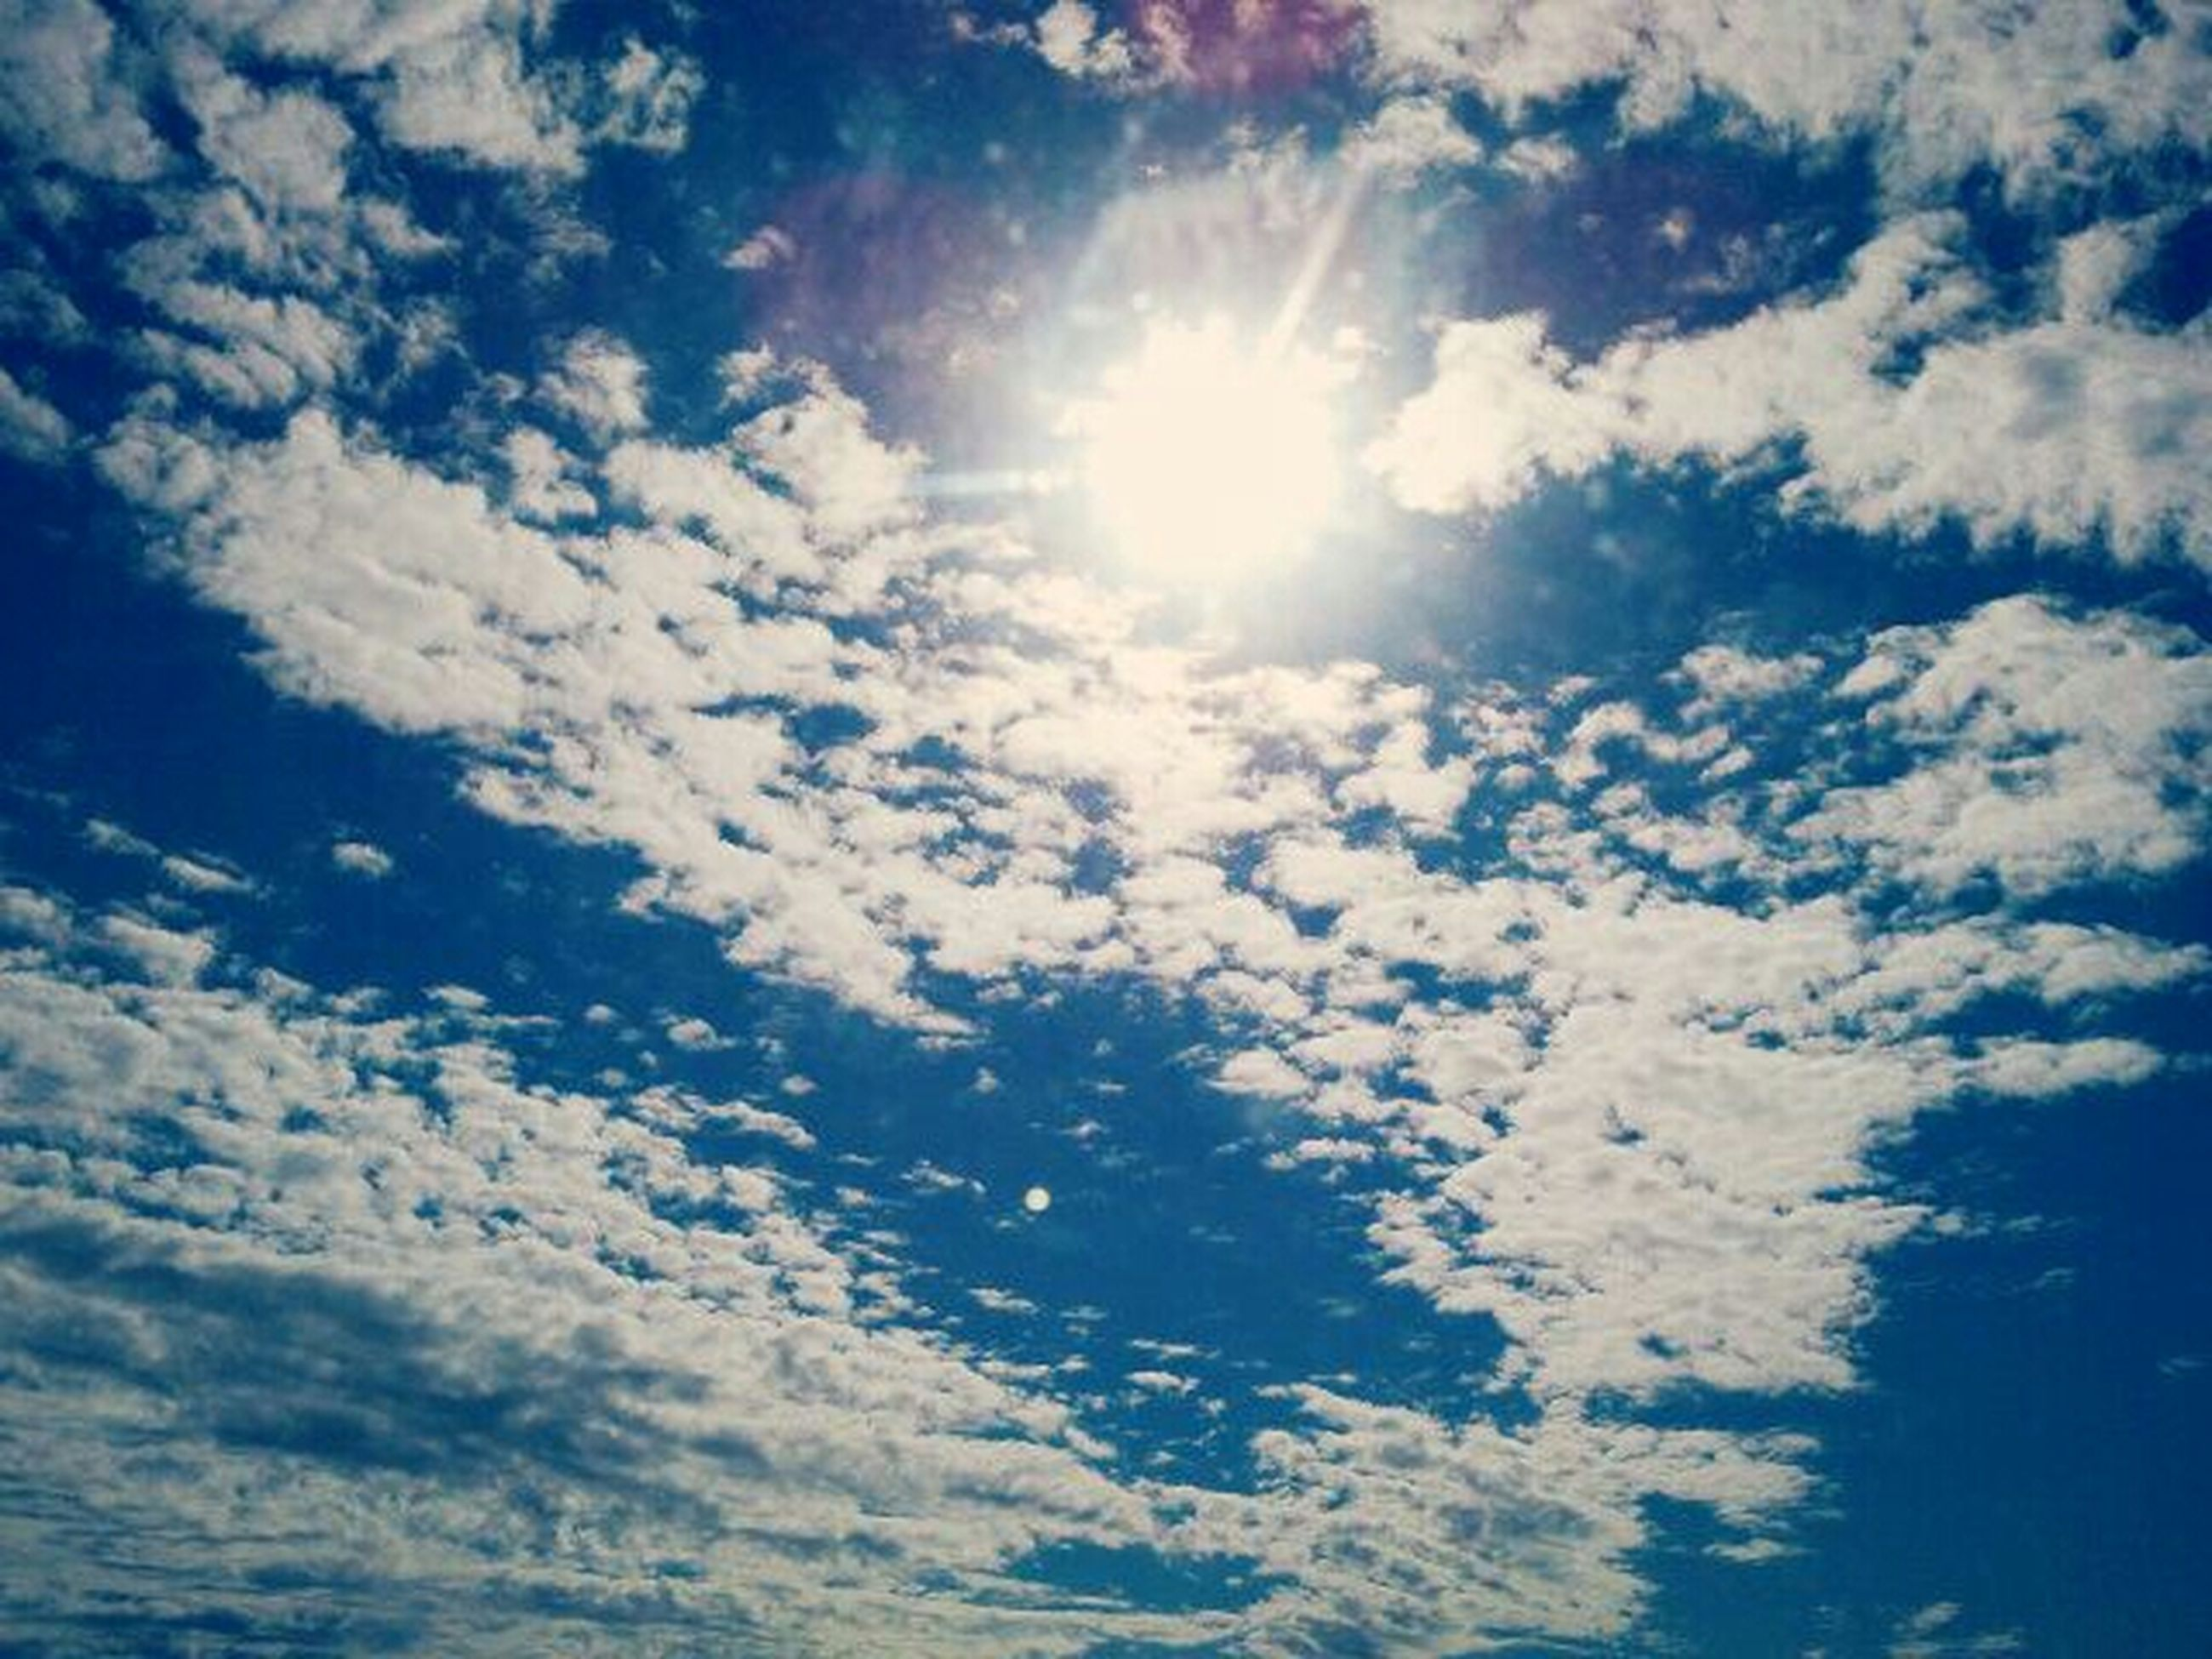 sky, low angle view, sun, cloud - sky, beauty in nature, sunbeam, tranquility, sunlight, scenics, sky only, nature, blue, tranquil scene, cloud, cloudscape, cloudy, idyllic, backgrounds, lens flare, sunny